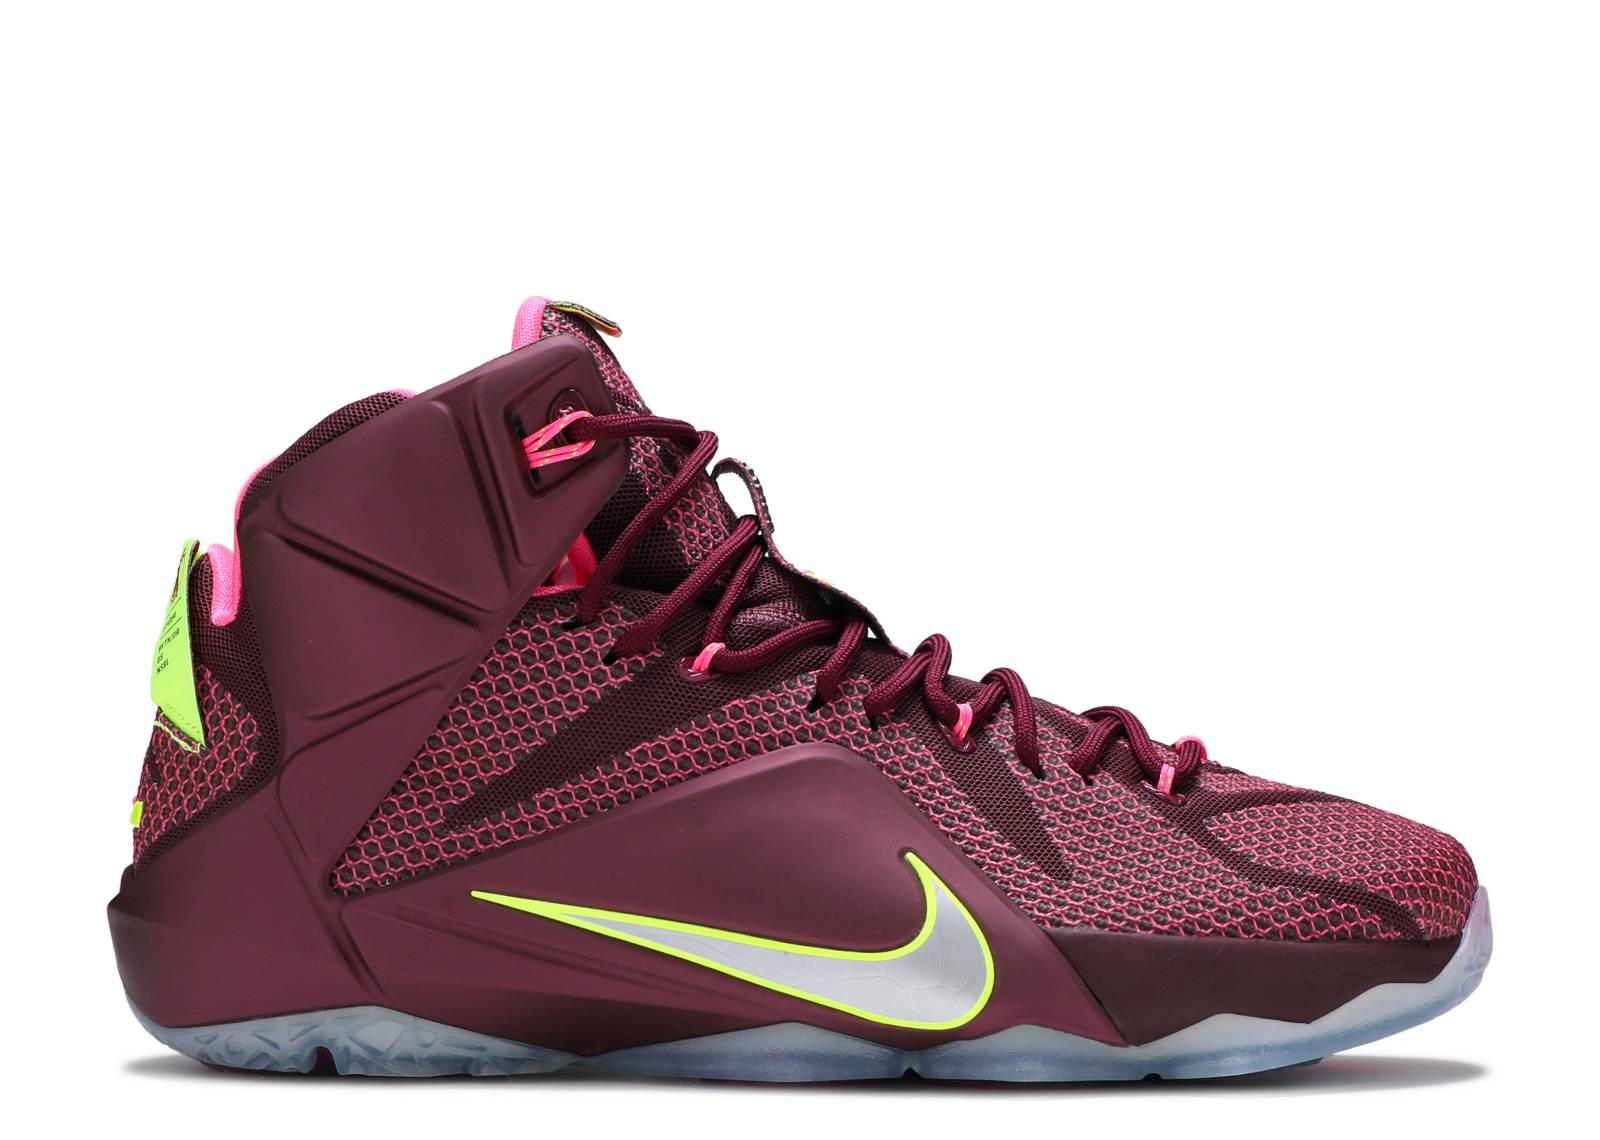 54a26d63d389 Lebron James - Nike Basketball - Nike